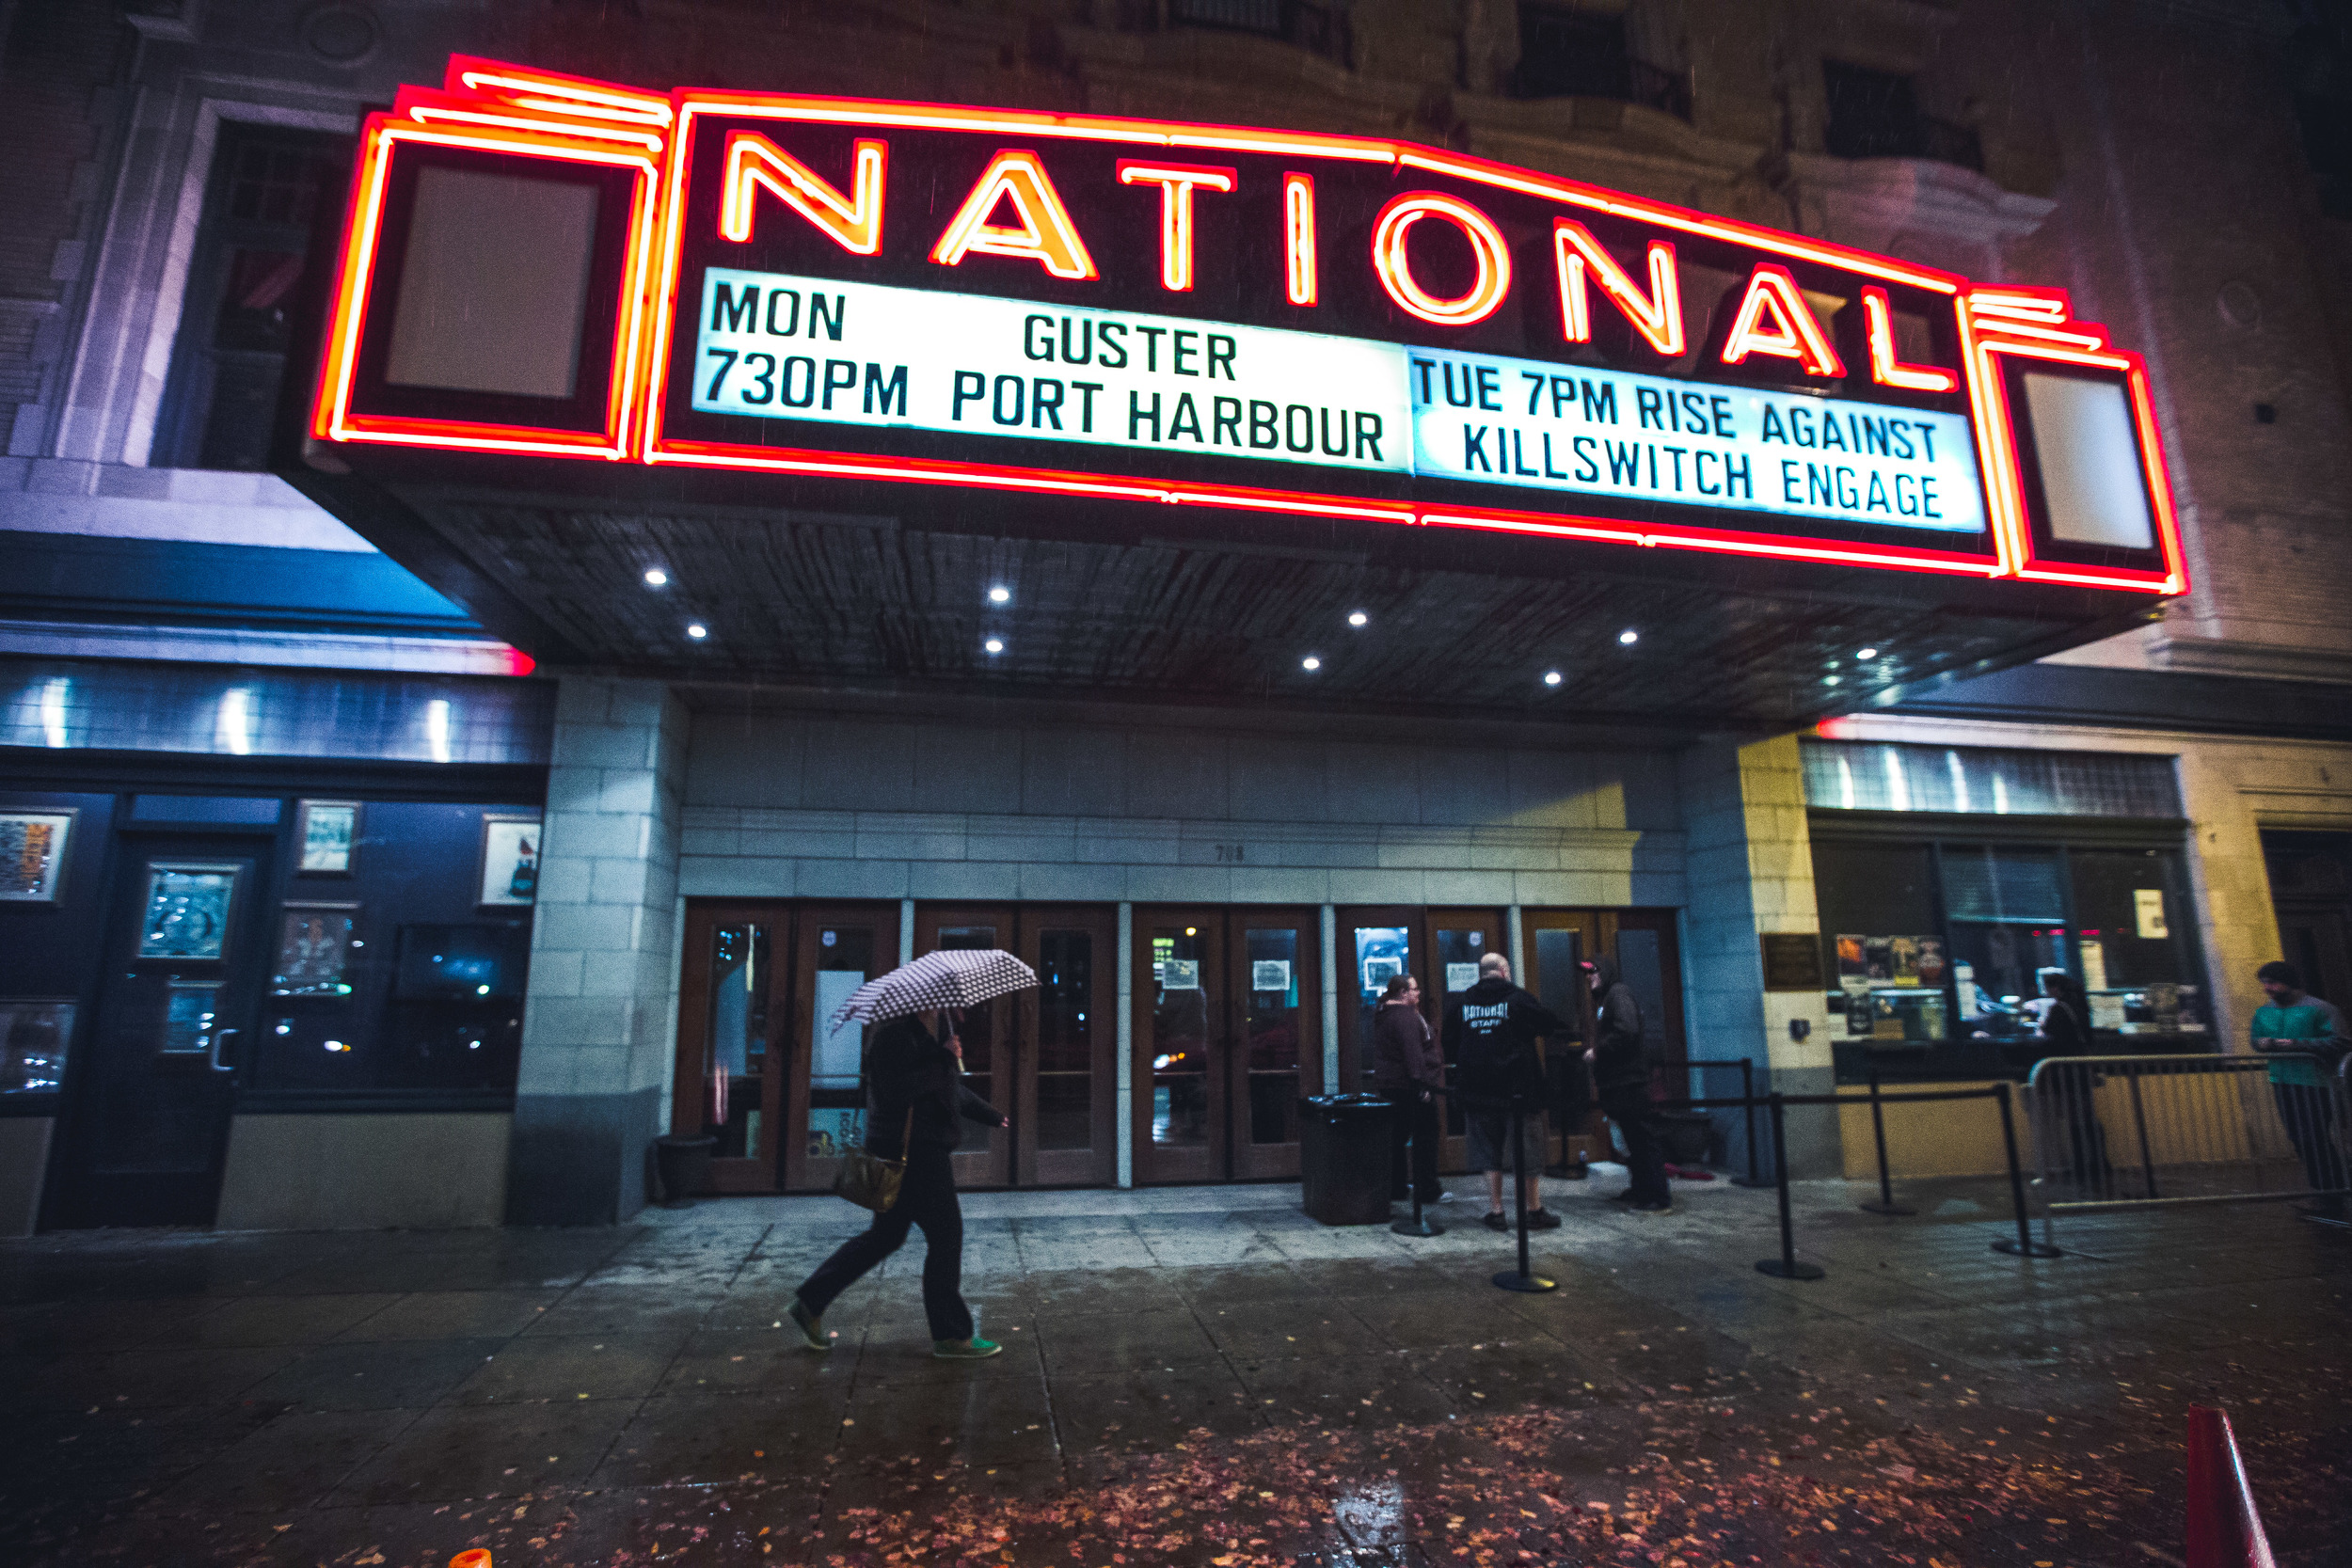 Port Harbour @ The National (No Watermark)-2.jpg